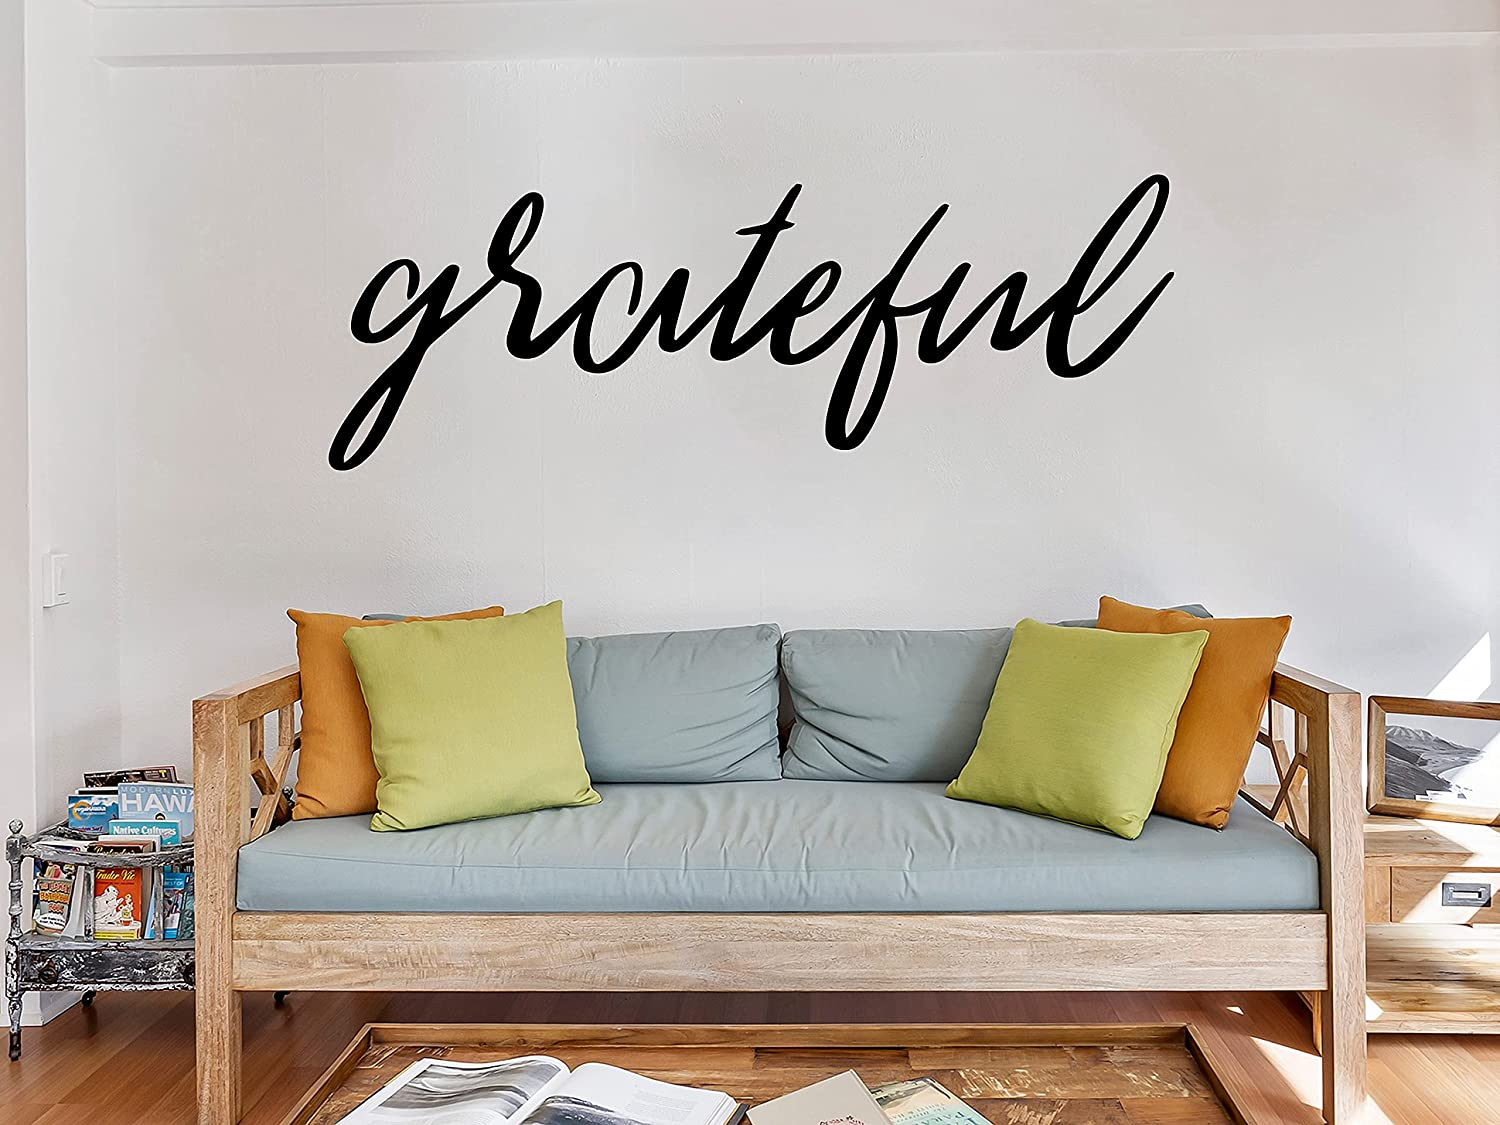 Grateful Cursive Vinyl excellence Sign Decal Sticker Car Decor Home W Popular brand in the world for